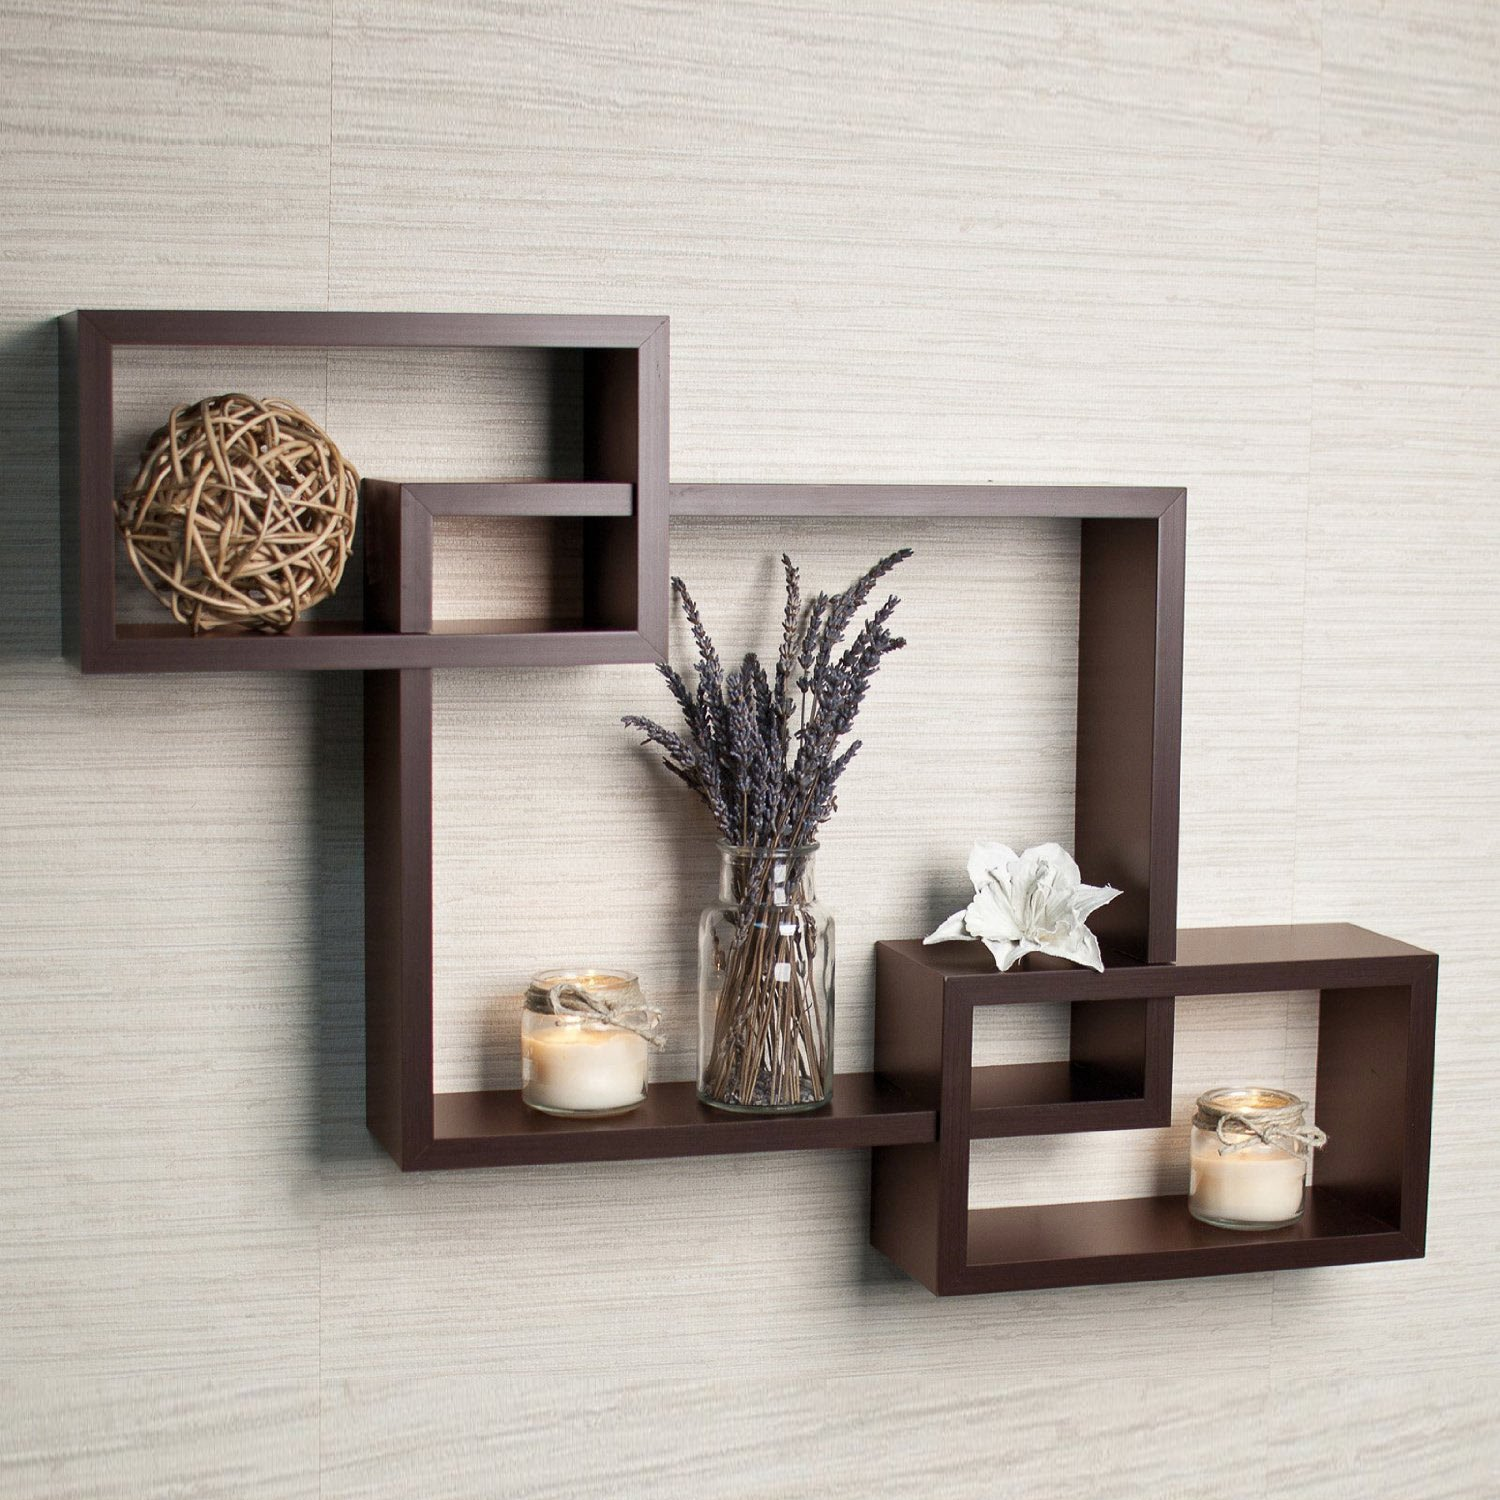 Driftingwood Wall Shelf Rack Set Of 3 Intersecting Wall Shelves   Brown Part 65